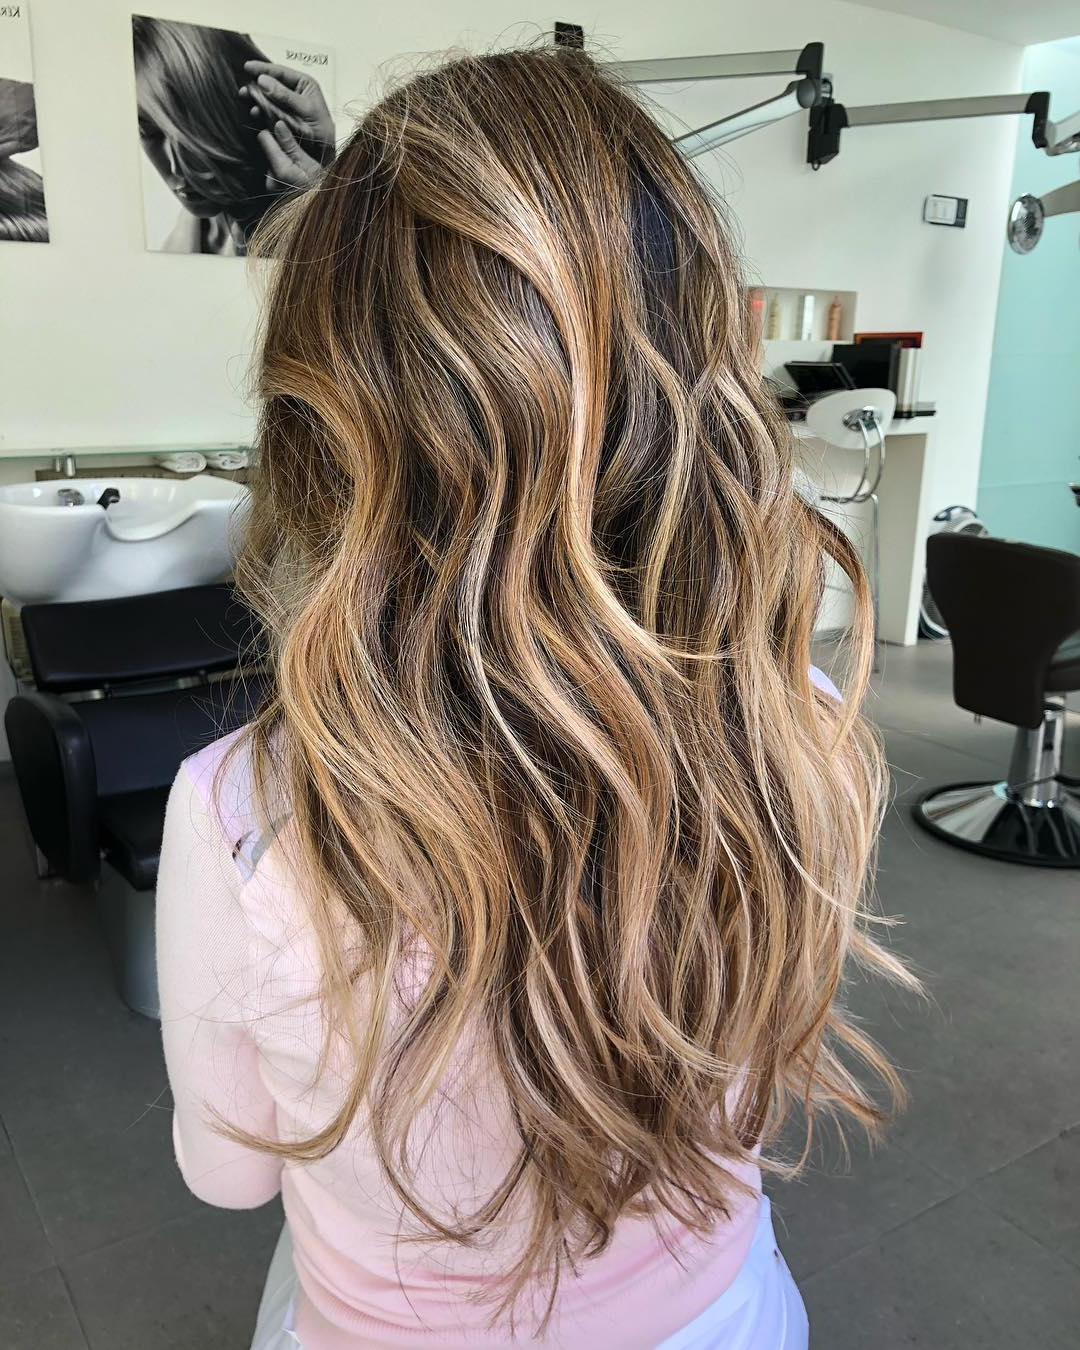 Latest Long Wavy Layers Hairstyles Regarding Trendy Hairstyles And Haircuts For Long Layered Hair To Rock (View 5 of 20)